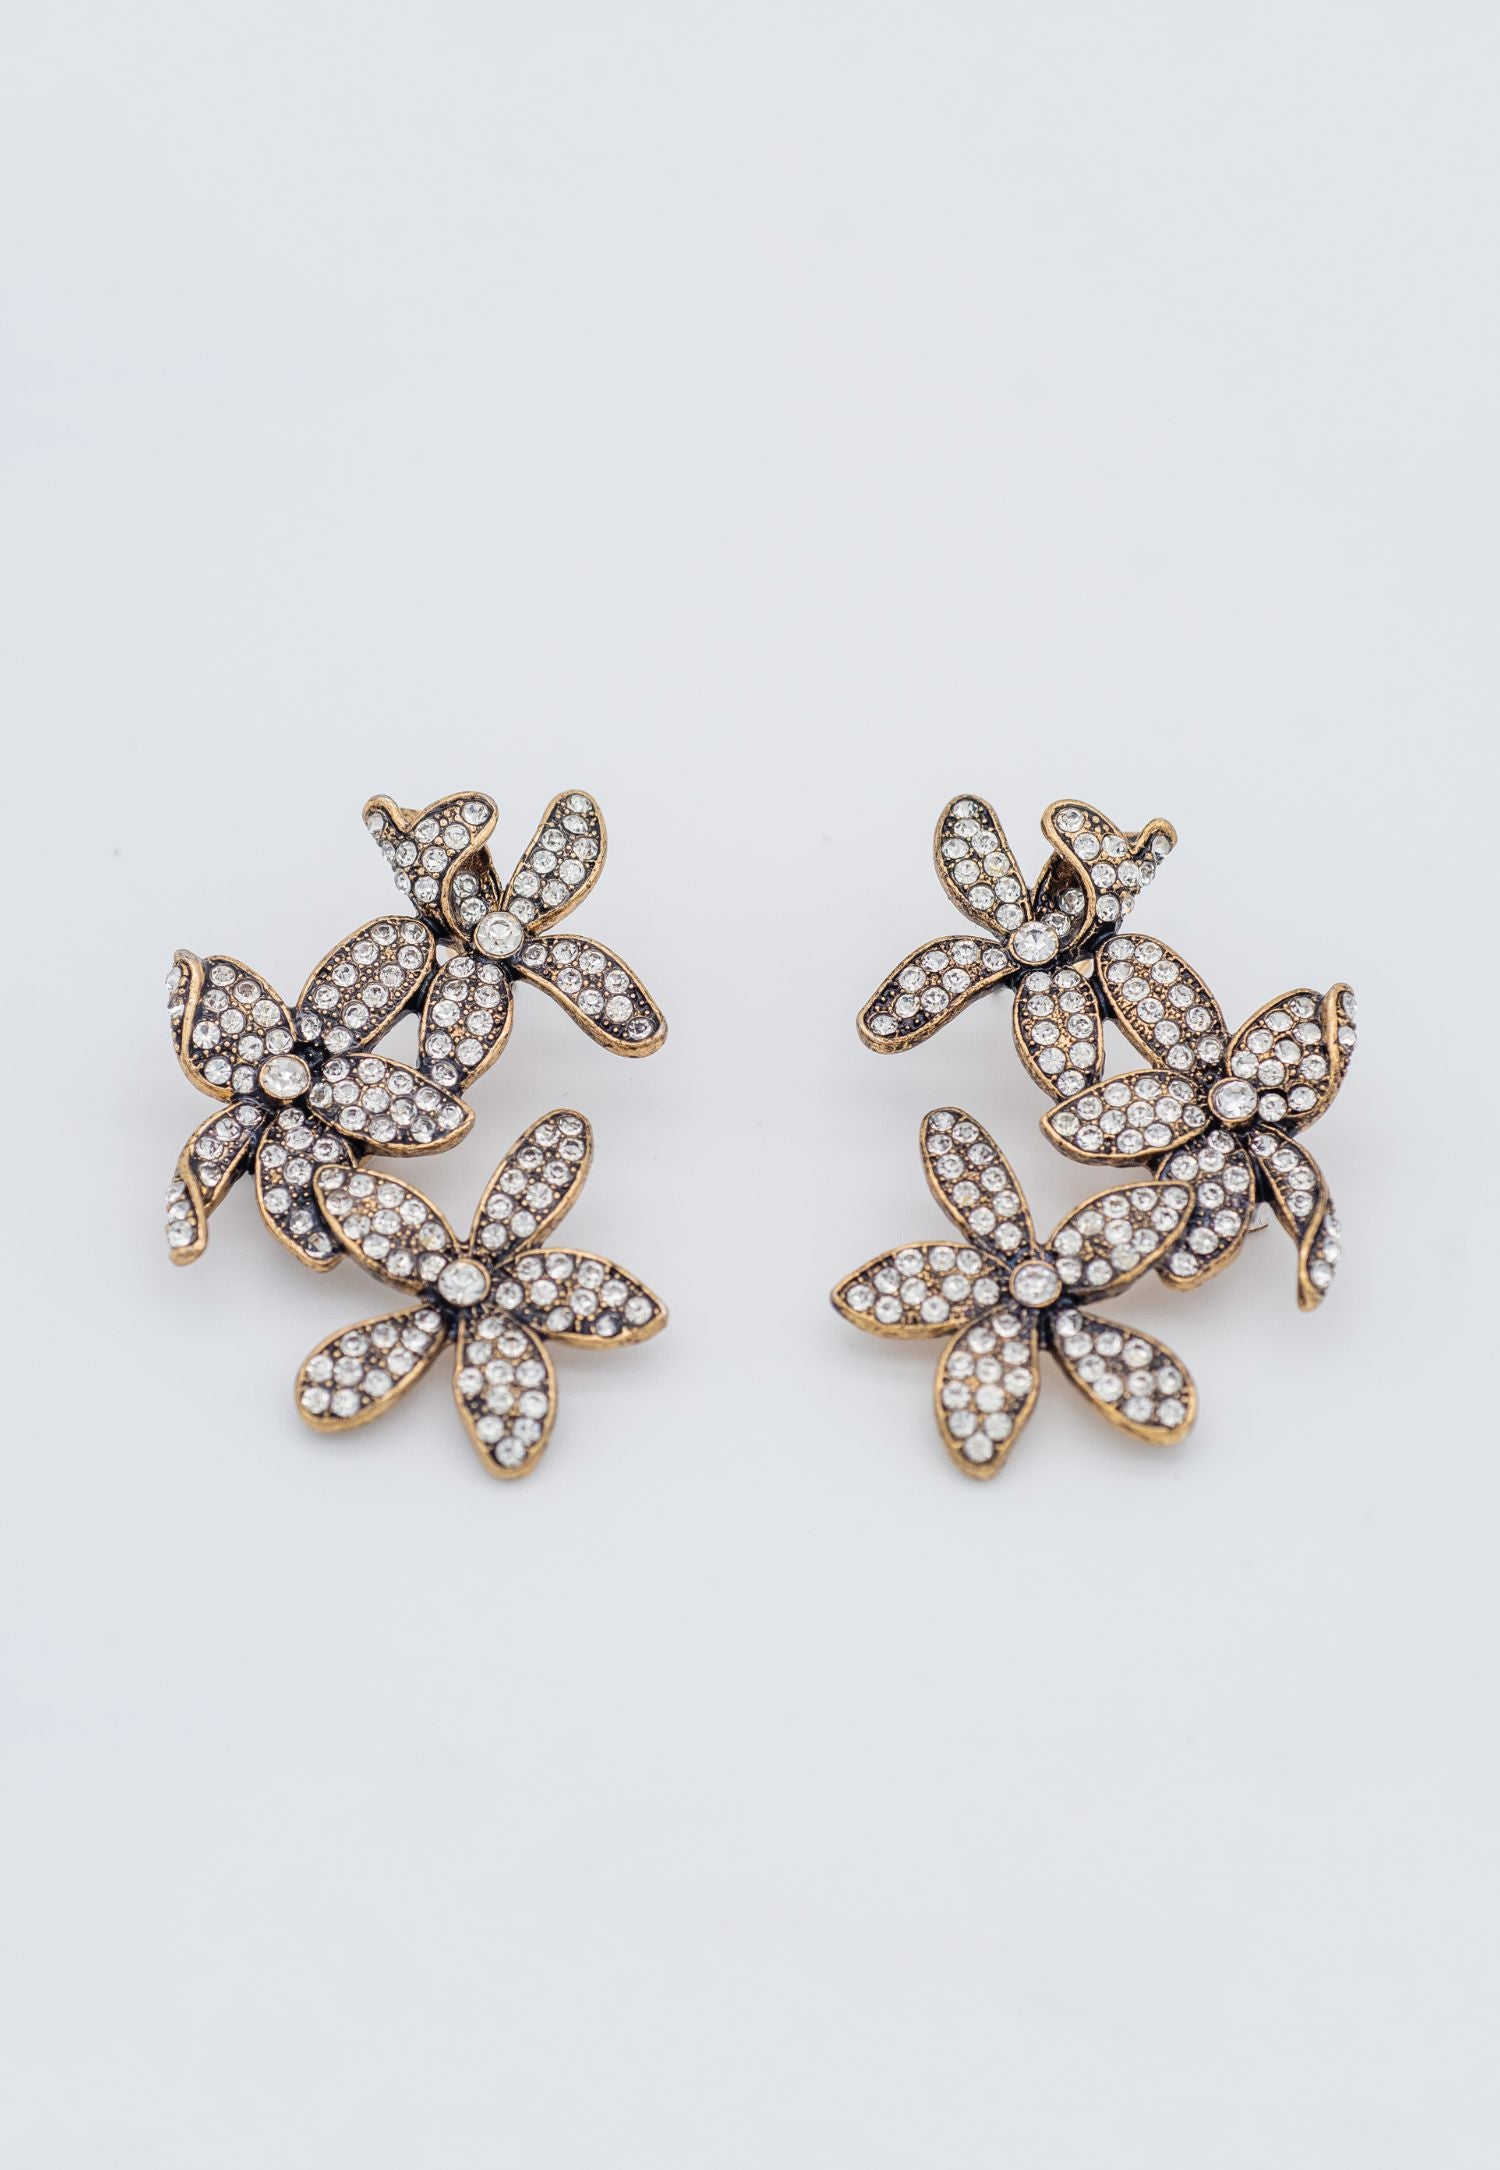 RHINESTONE STUDDED FLORAL EARRINGS